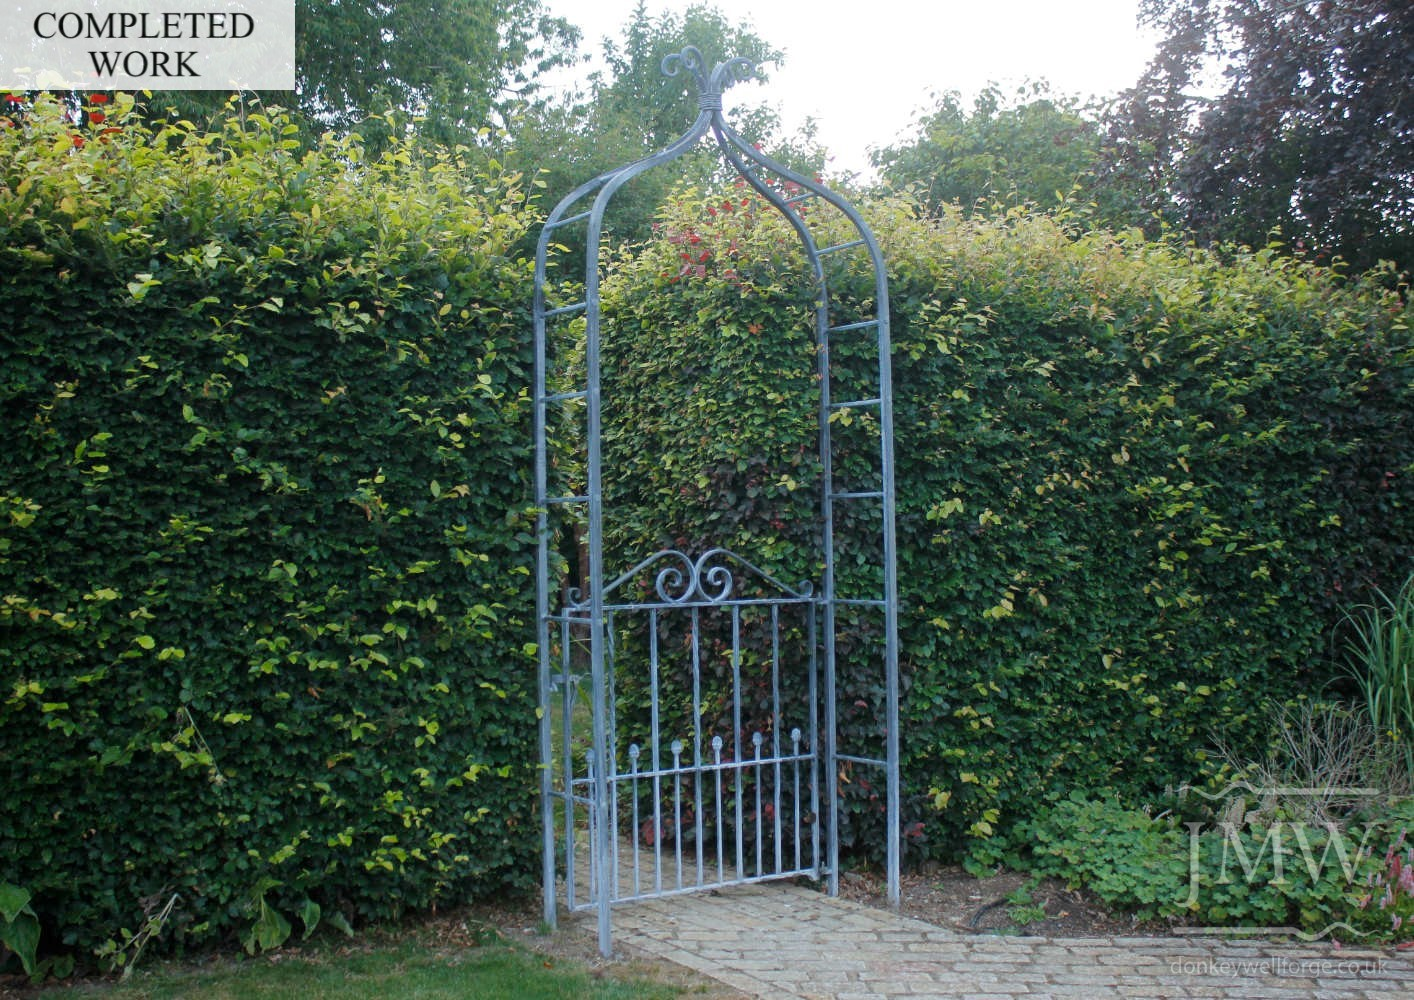 completed-forged-garden-arch-gate